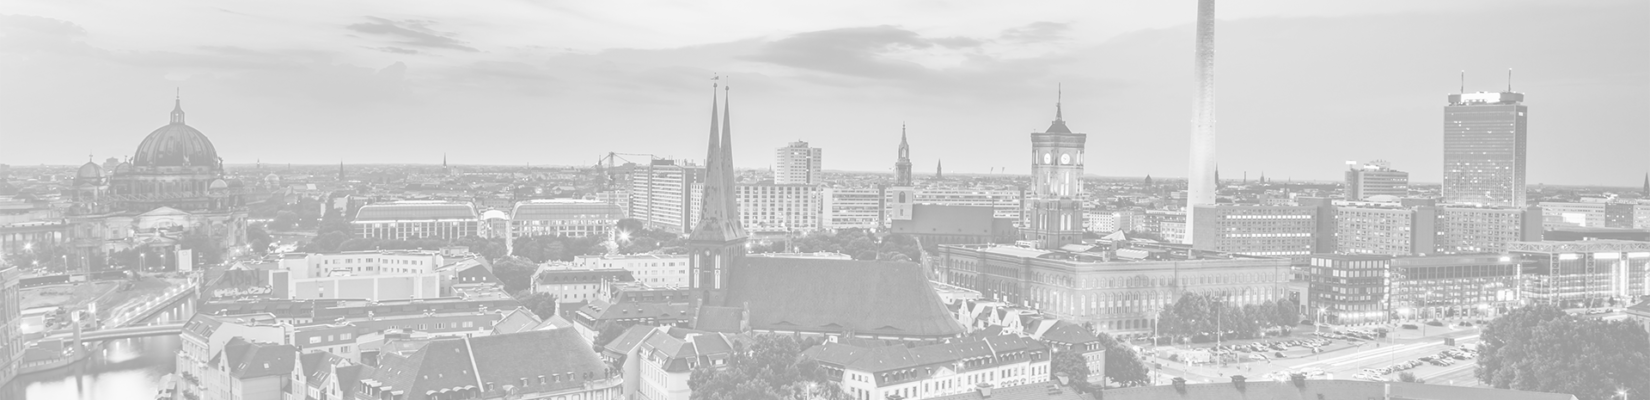 Transparent-Gray View of City in Germany - BluJay Customs Management and Trade Compliance